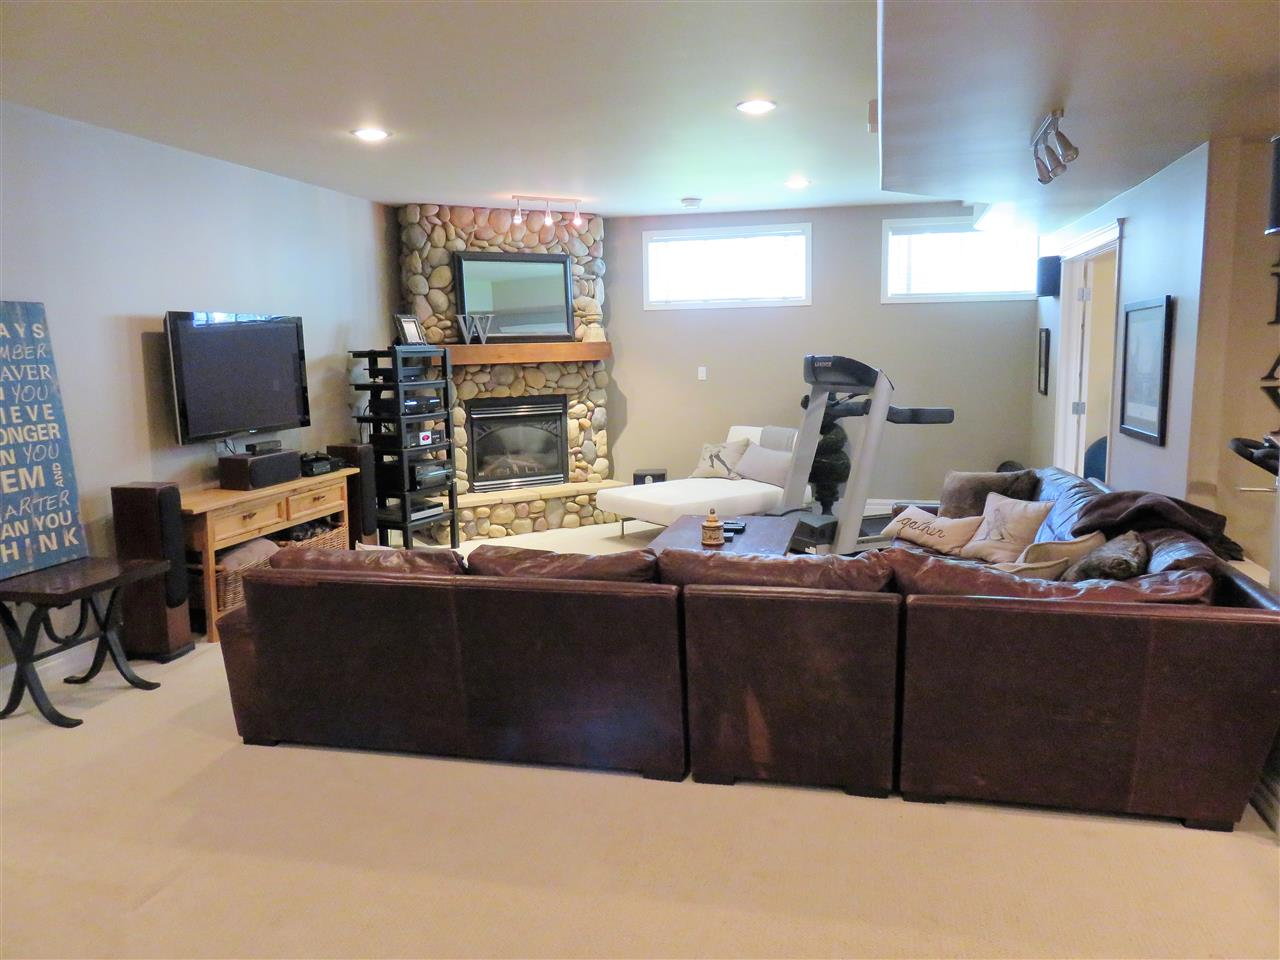 Holy WOW again!! View of the Fully Finished Basement Family Room!